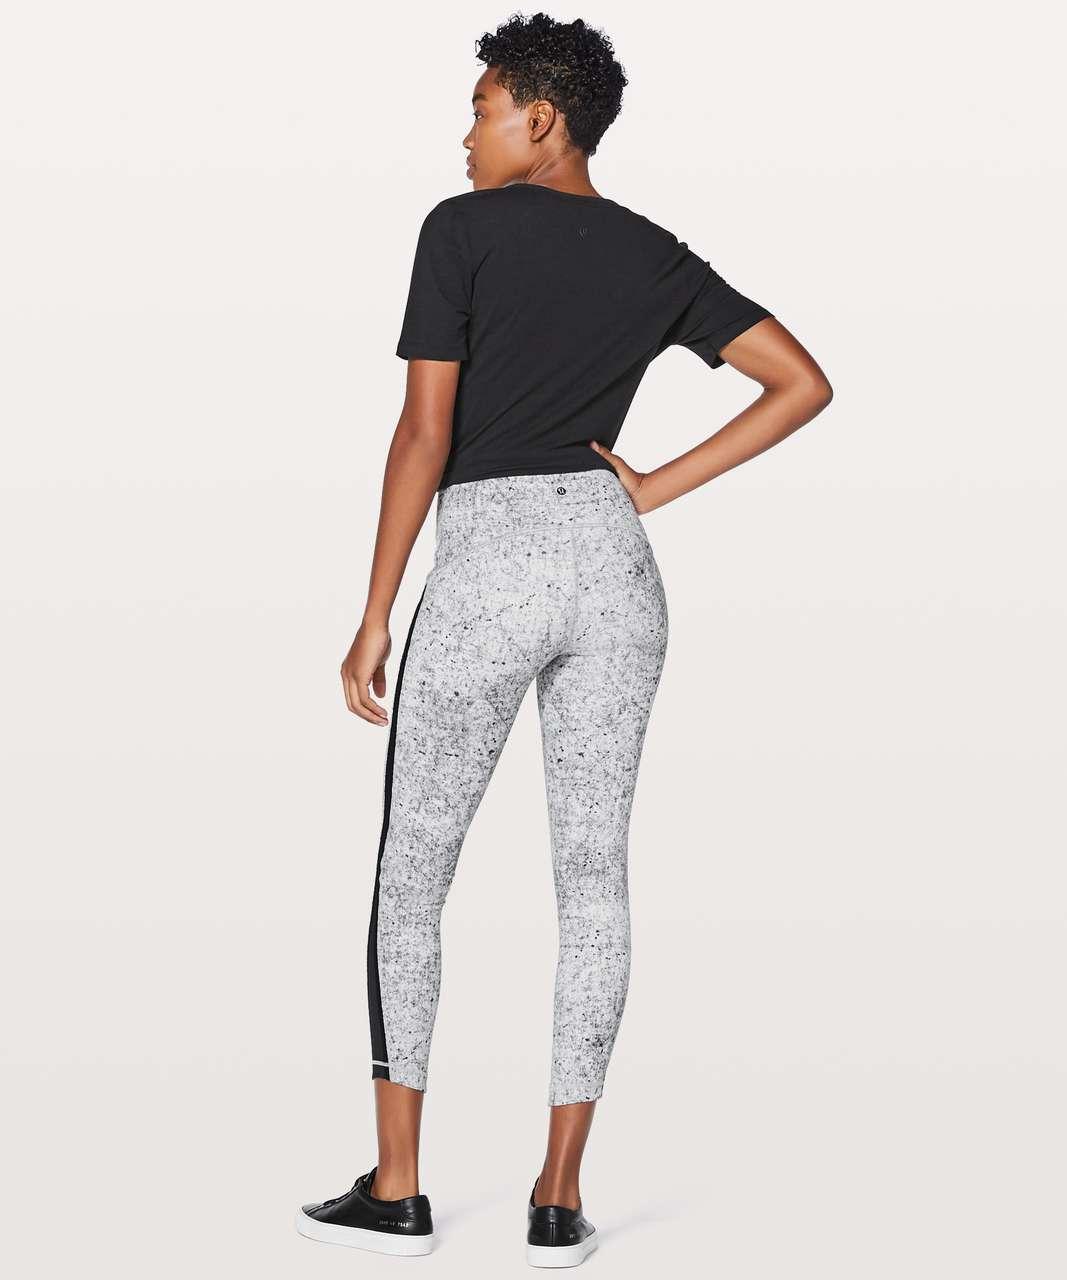 "Lululemon Wunder Under Hi-Rise 7/8 Tight (Awaken) 25"" - Antiqued Alpine White Multi / Black"